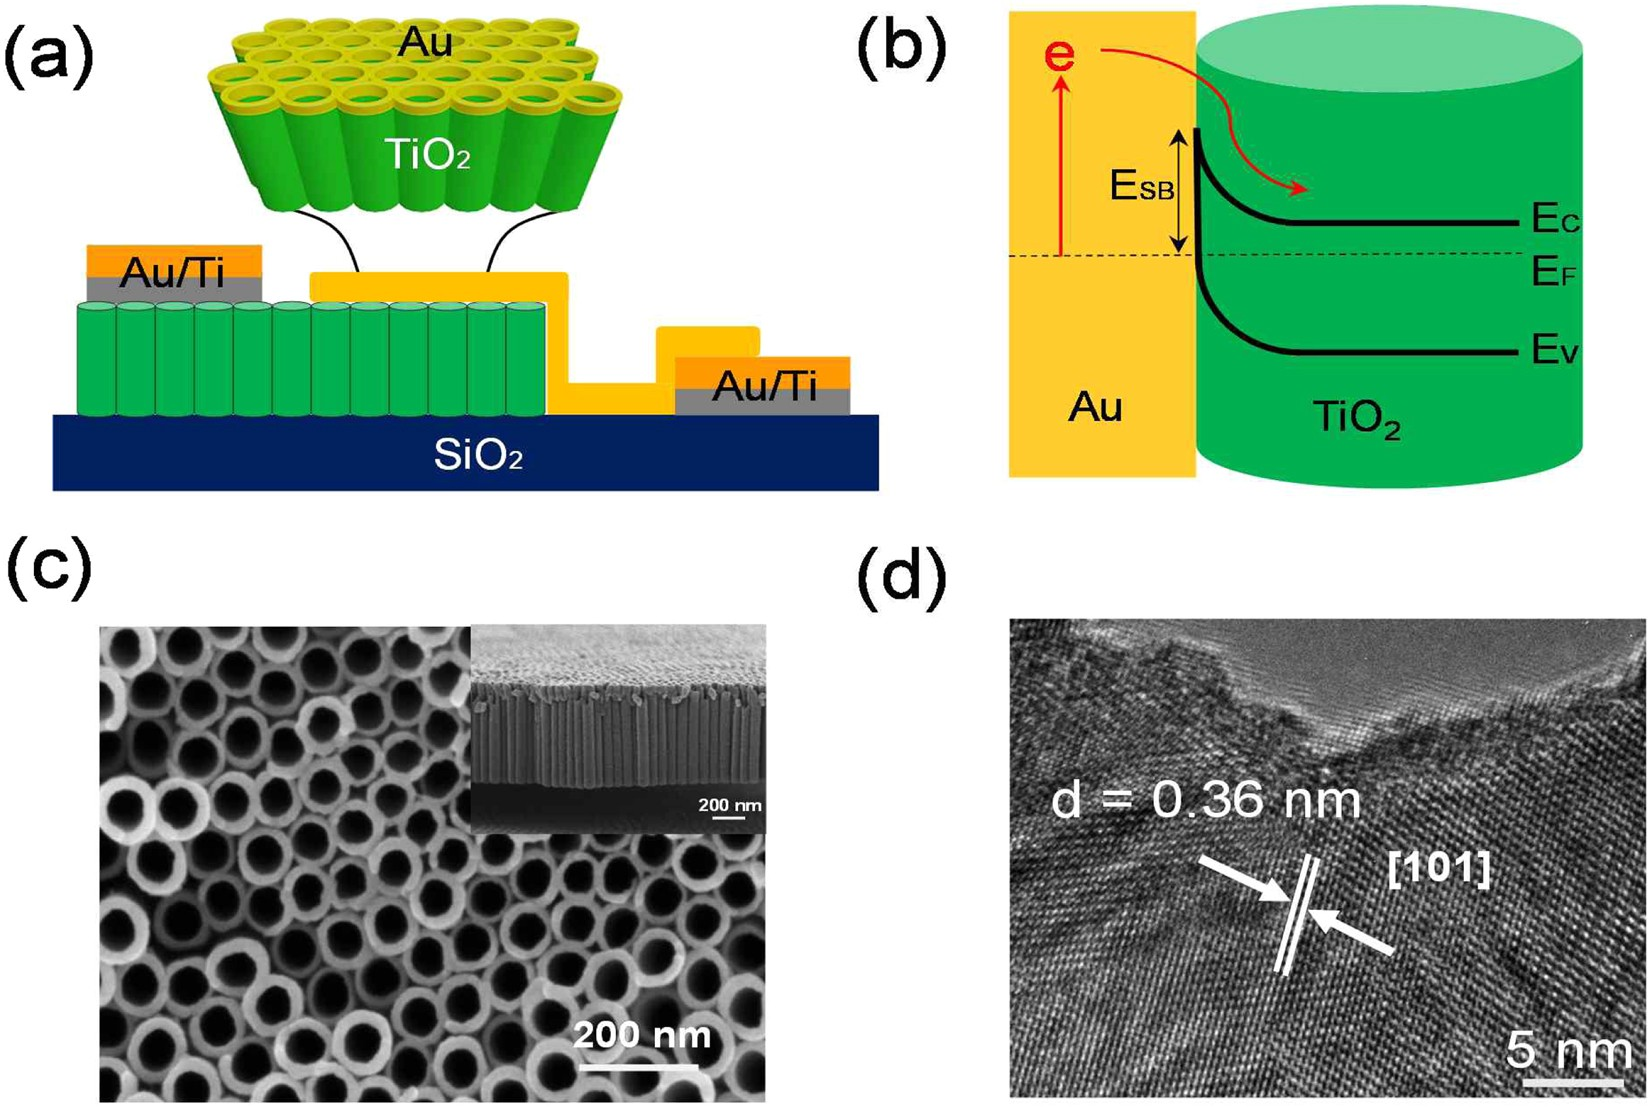 Three Dimensional Hot Electron Photovoltaic Device With Vertically Solar Panel Corrugated Thin Film Cells On Wiring Panels In Aligned Tio 2 Nanotubes Scientific Reports